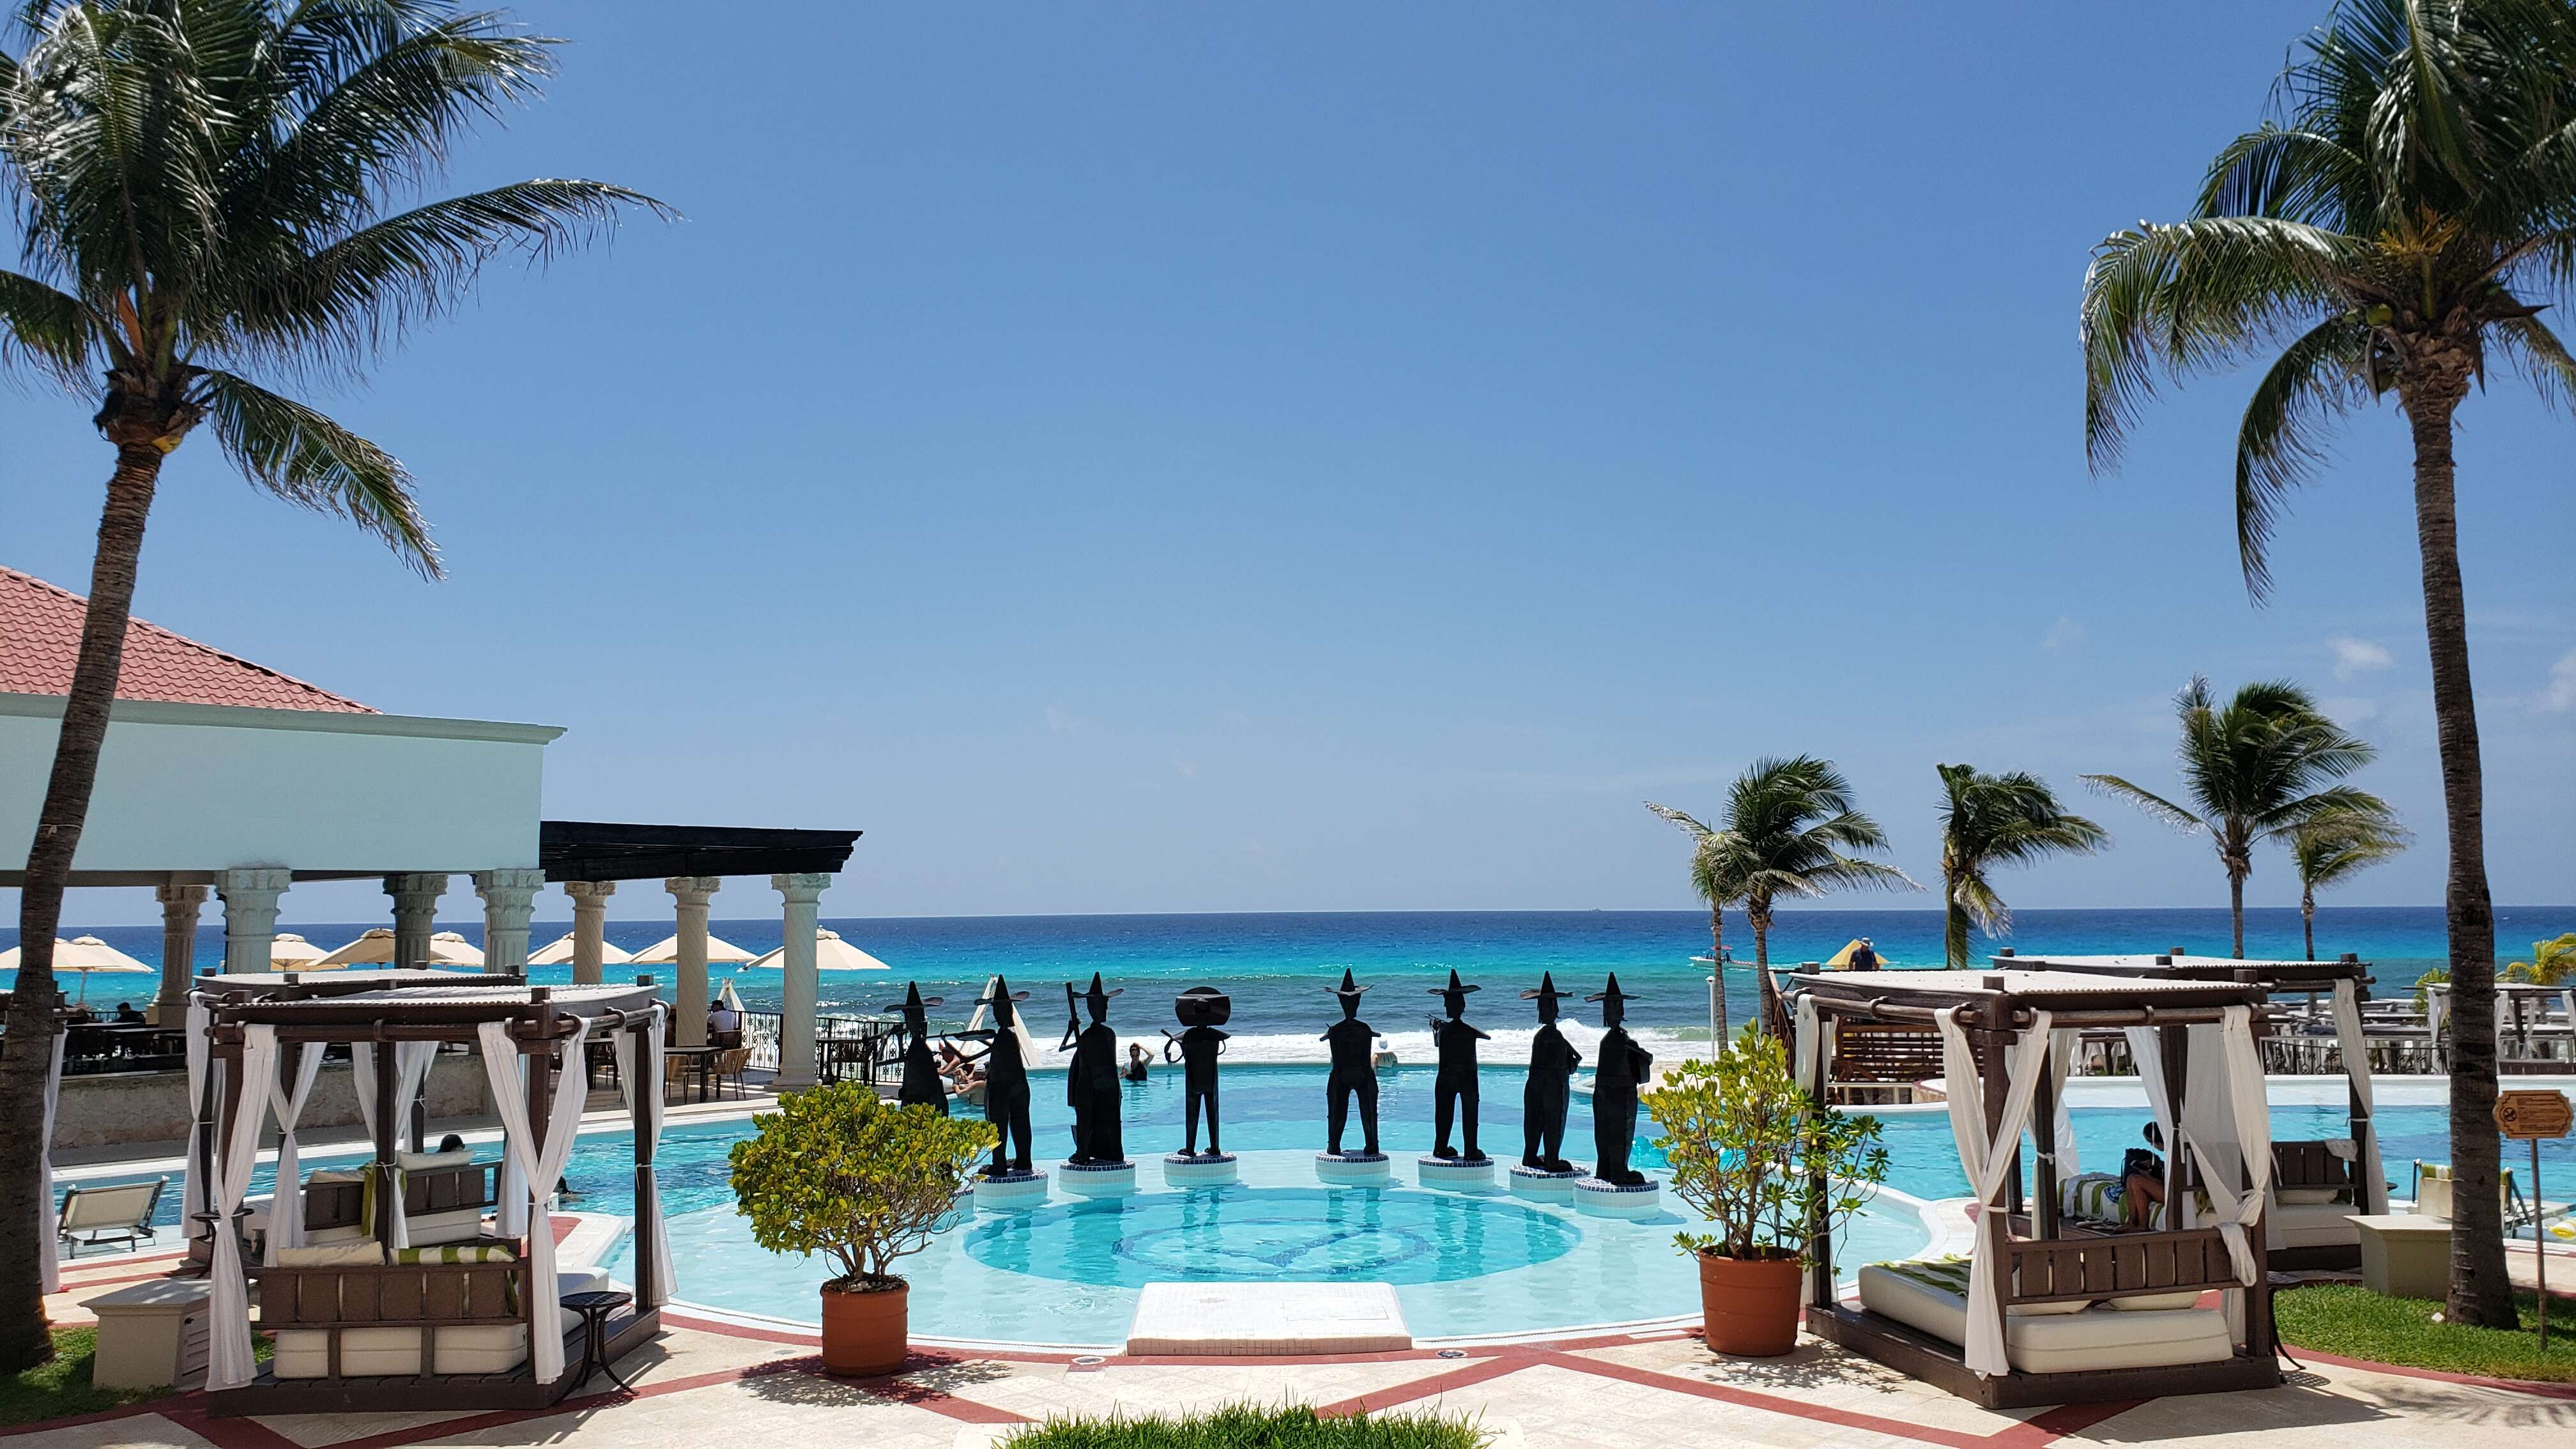 Friday Five: Top 5 Things I Love About Hyatt Zilara Cancun